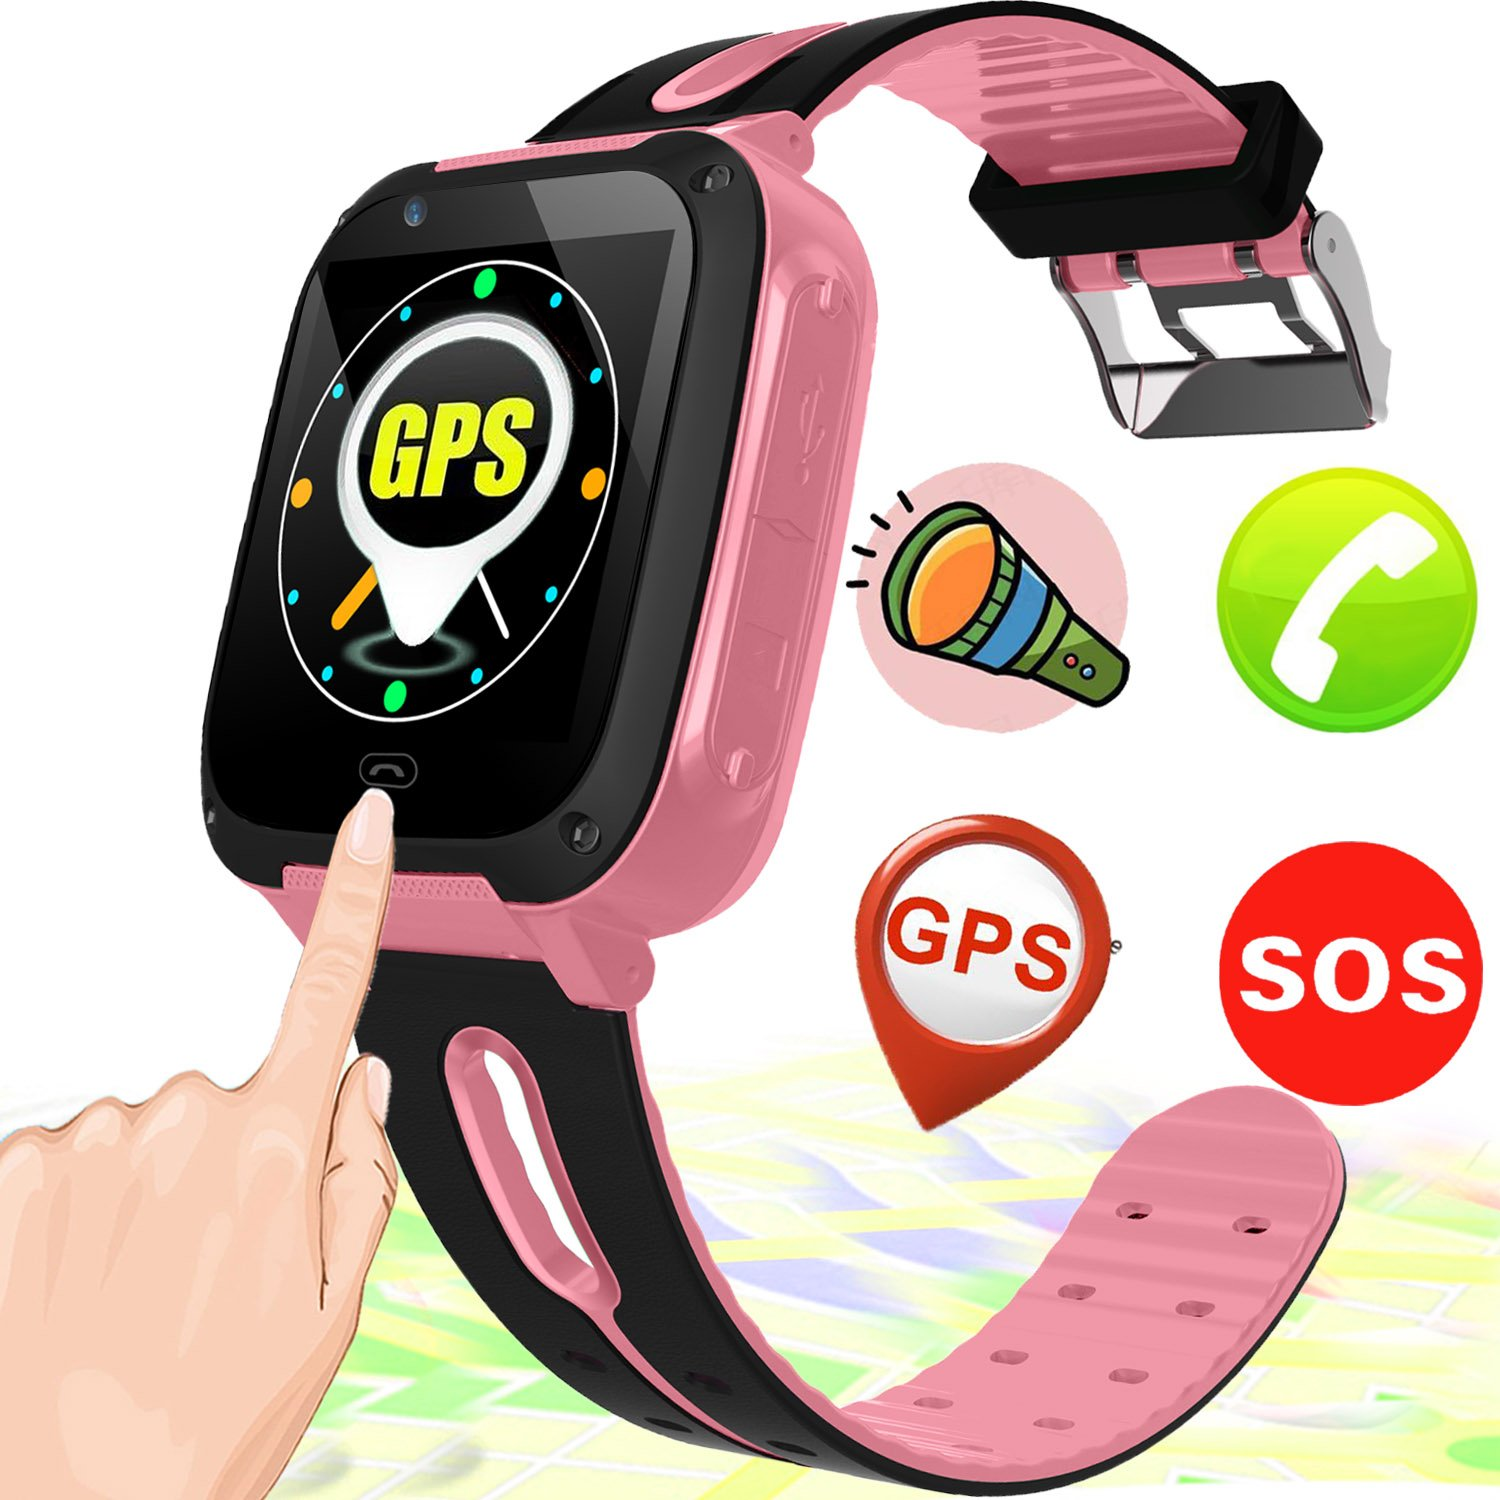 Kids Smart Watch Smart Wrist Watch Phone for 3-12 Year Old with GPS Tracker  SOS Camera Sim Card Slot Game Touch Screen Smartwatch Educational Toys